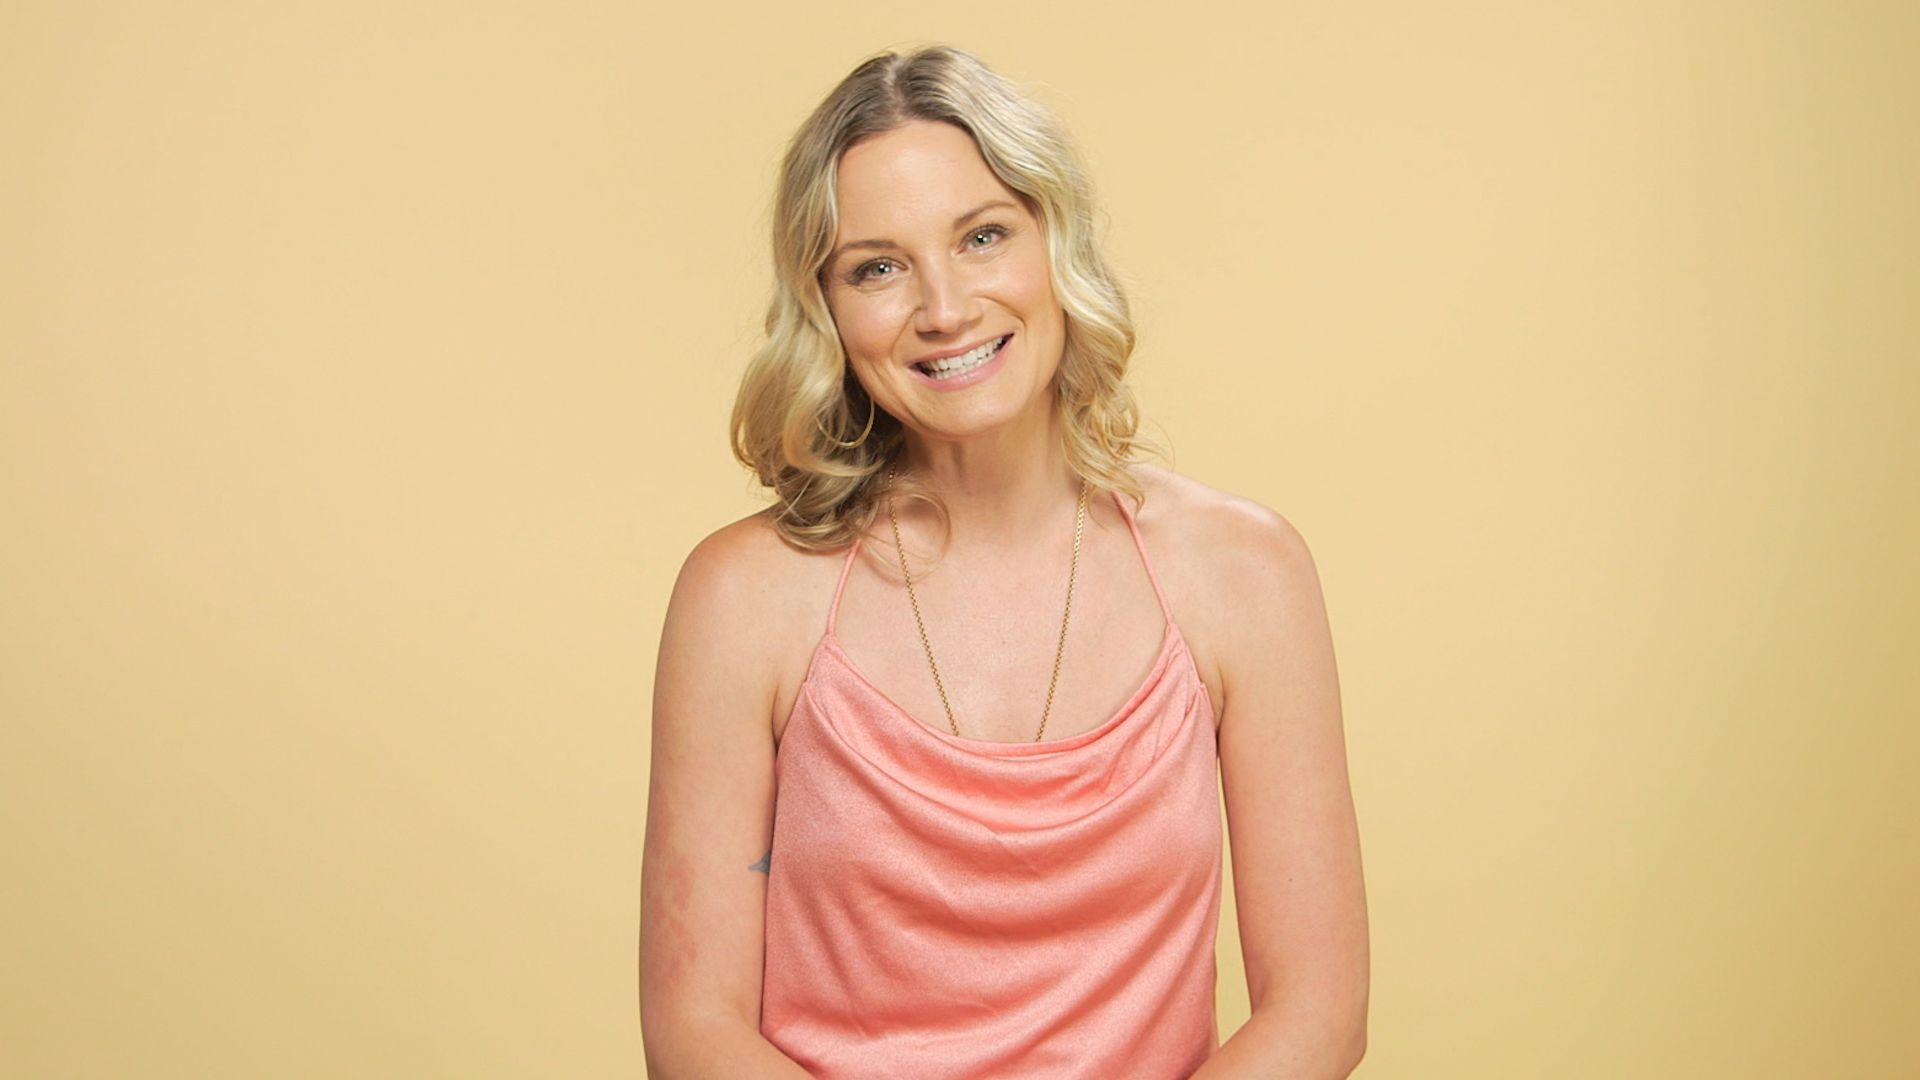 Jennifer Nettles on How She Finally Broke into the Country Music Scene